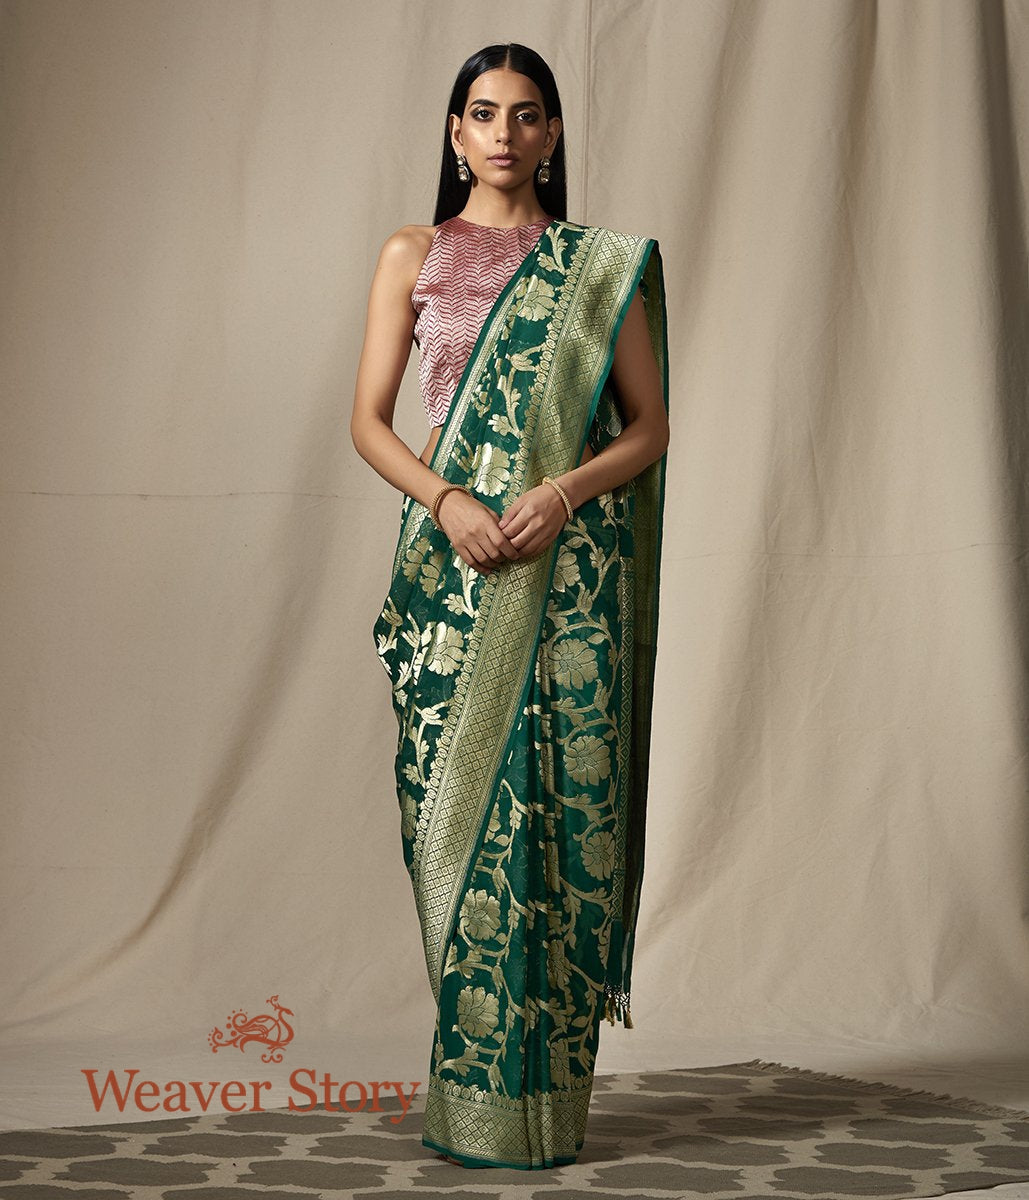 Handwoven Banarasi Georgette in Dark Green with Floral jaal